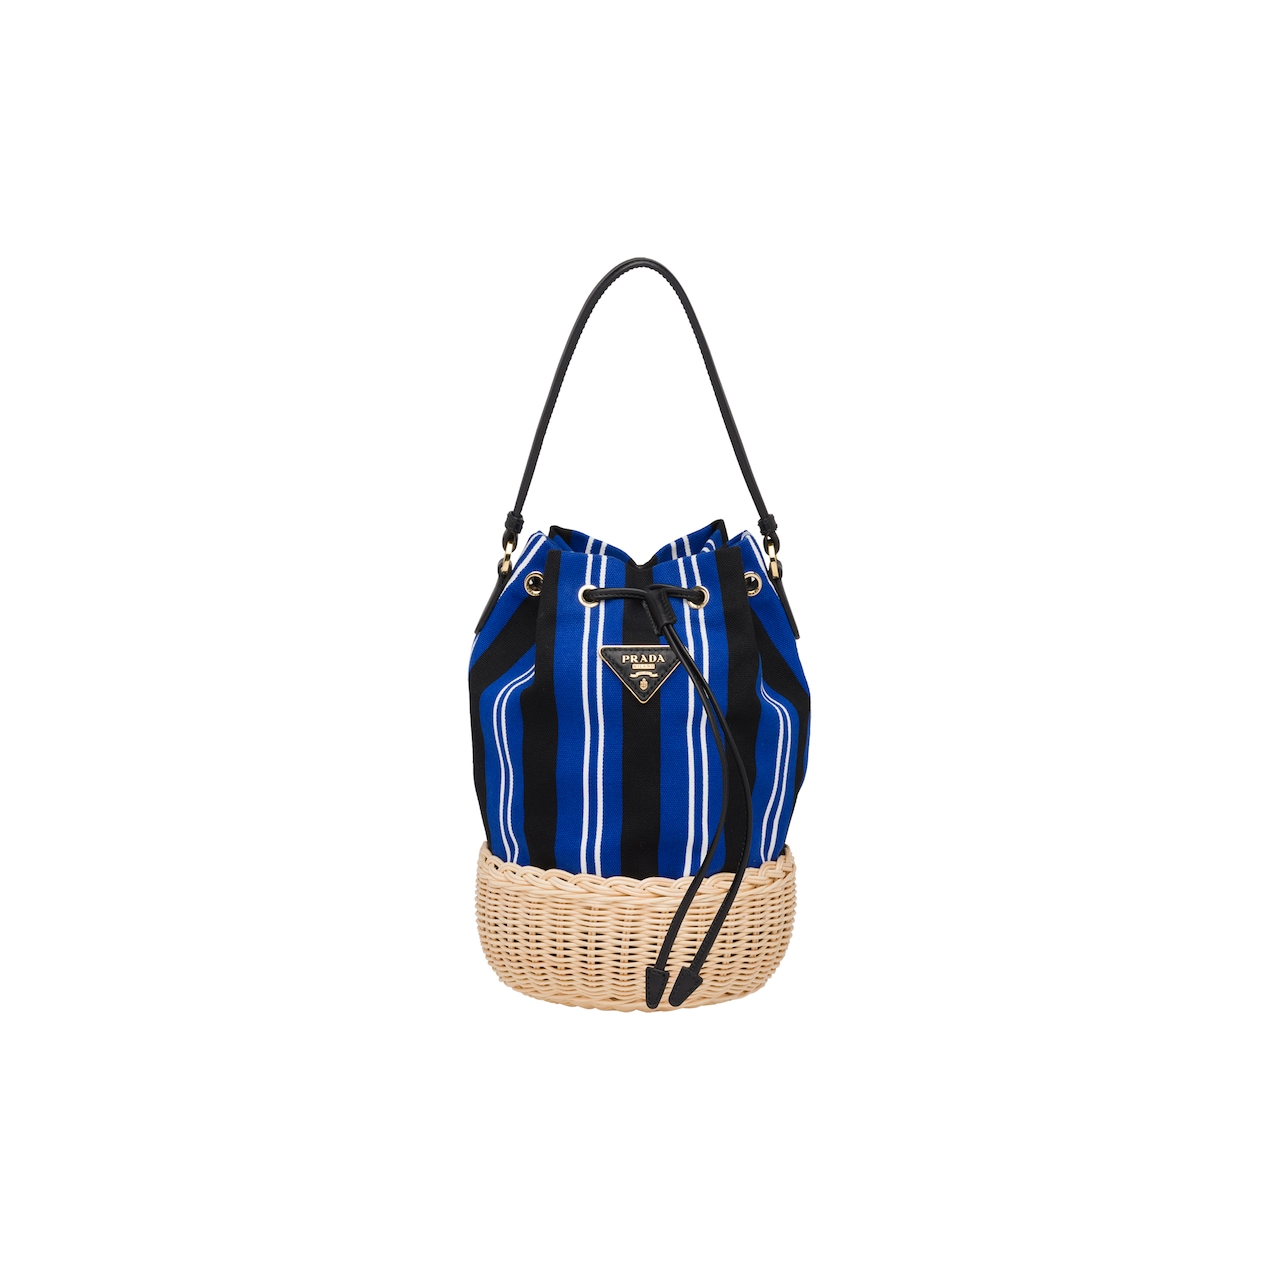 Wicker and canvas shoulder bag